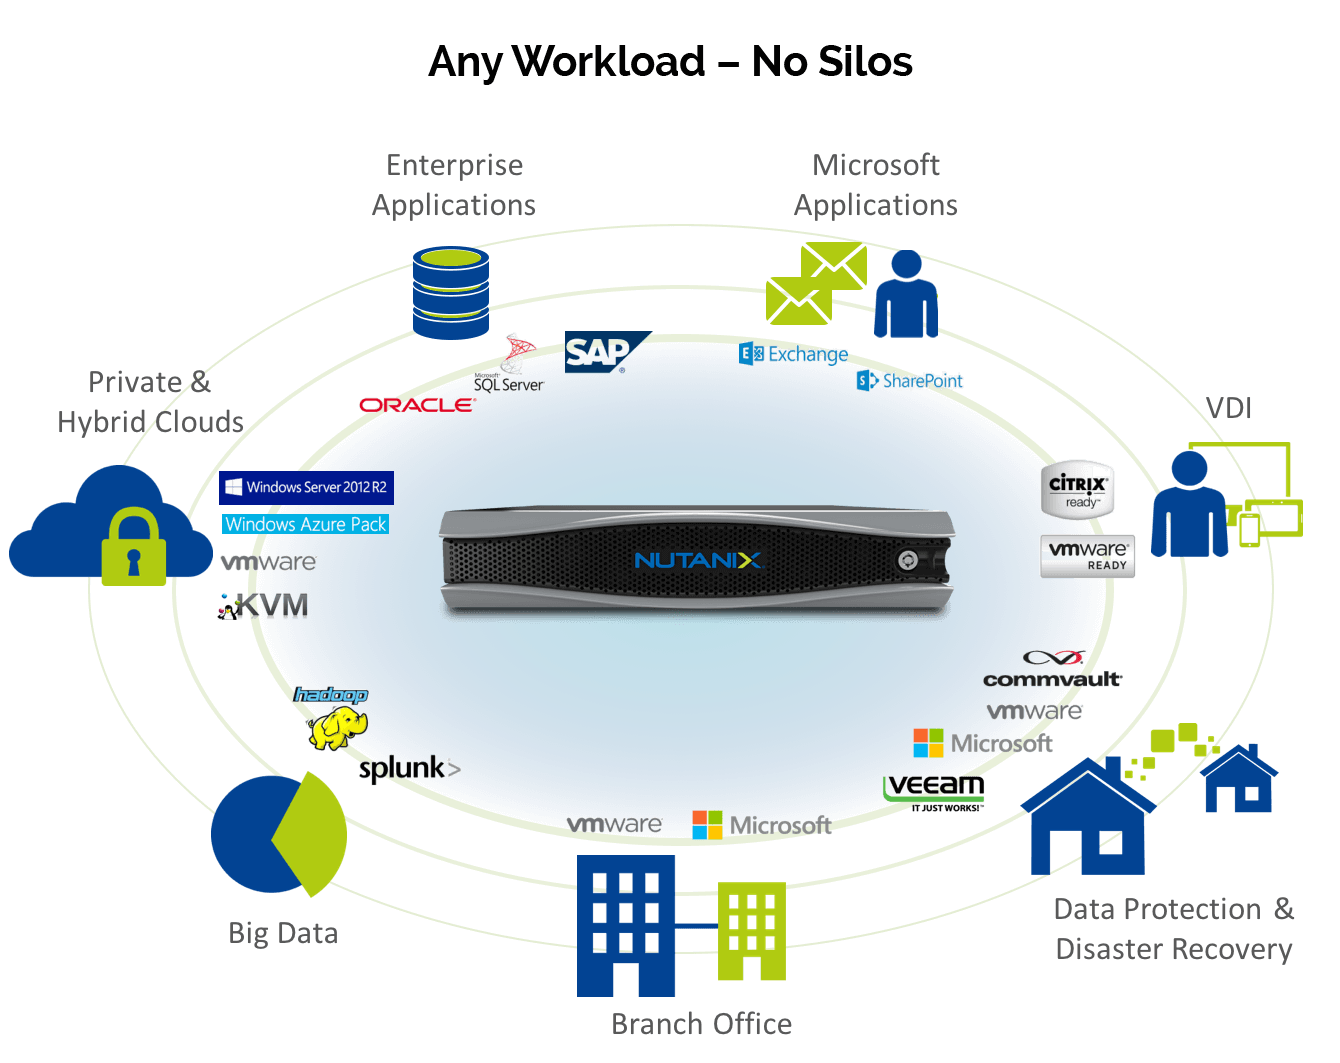 Digicor Nutanix Business Applications